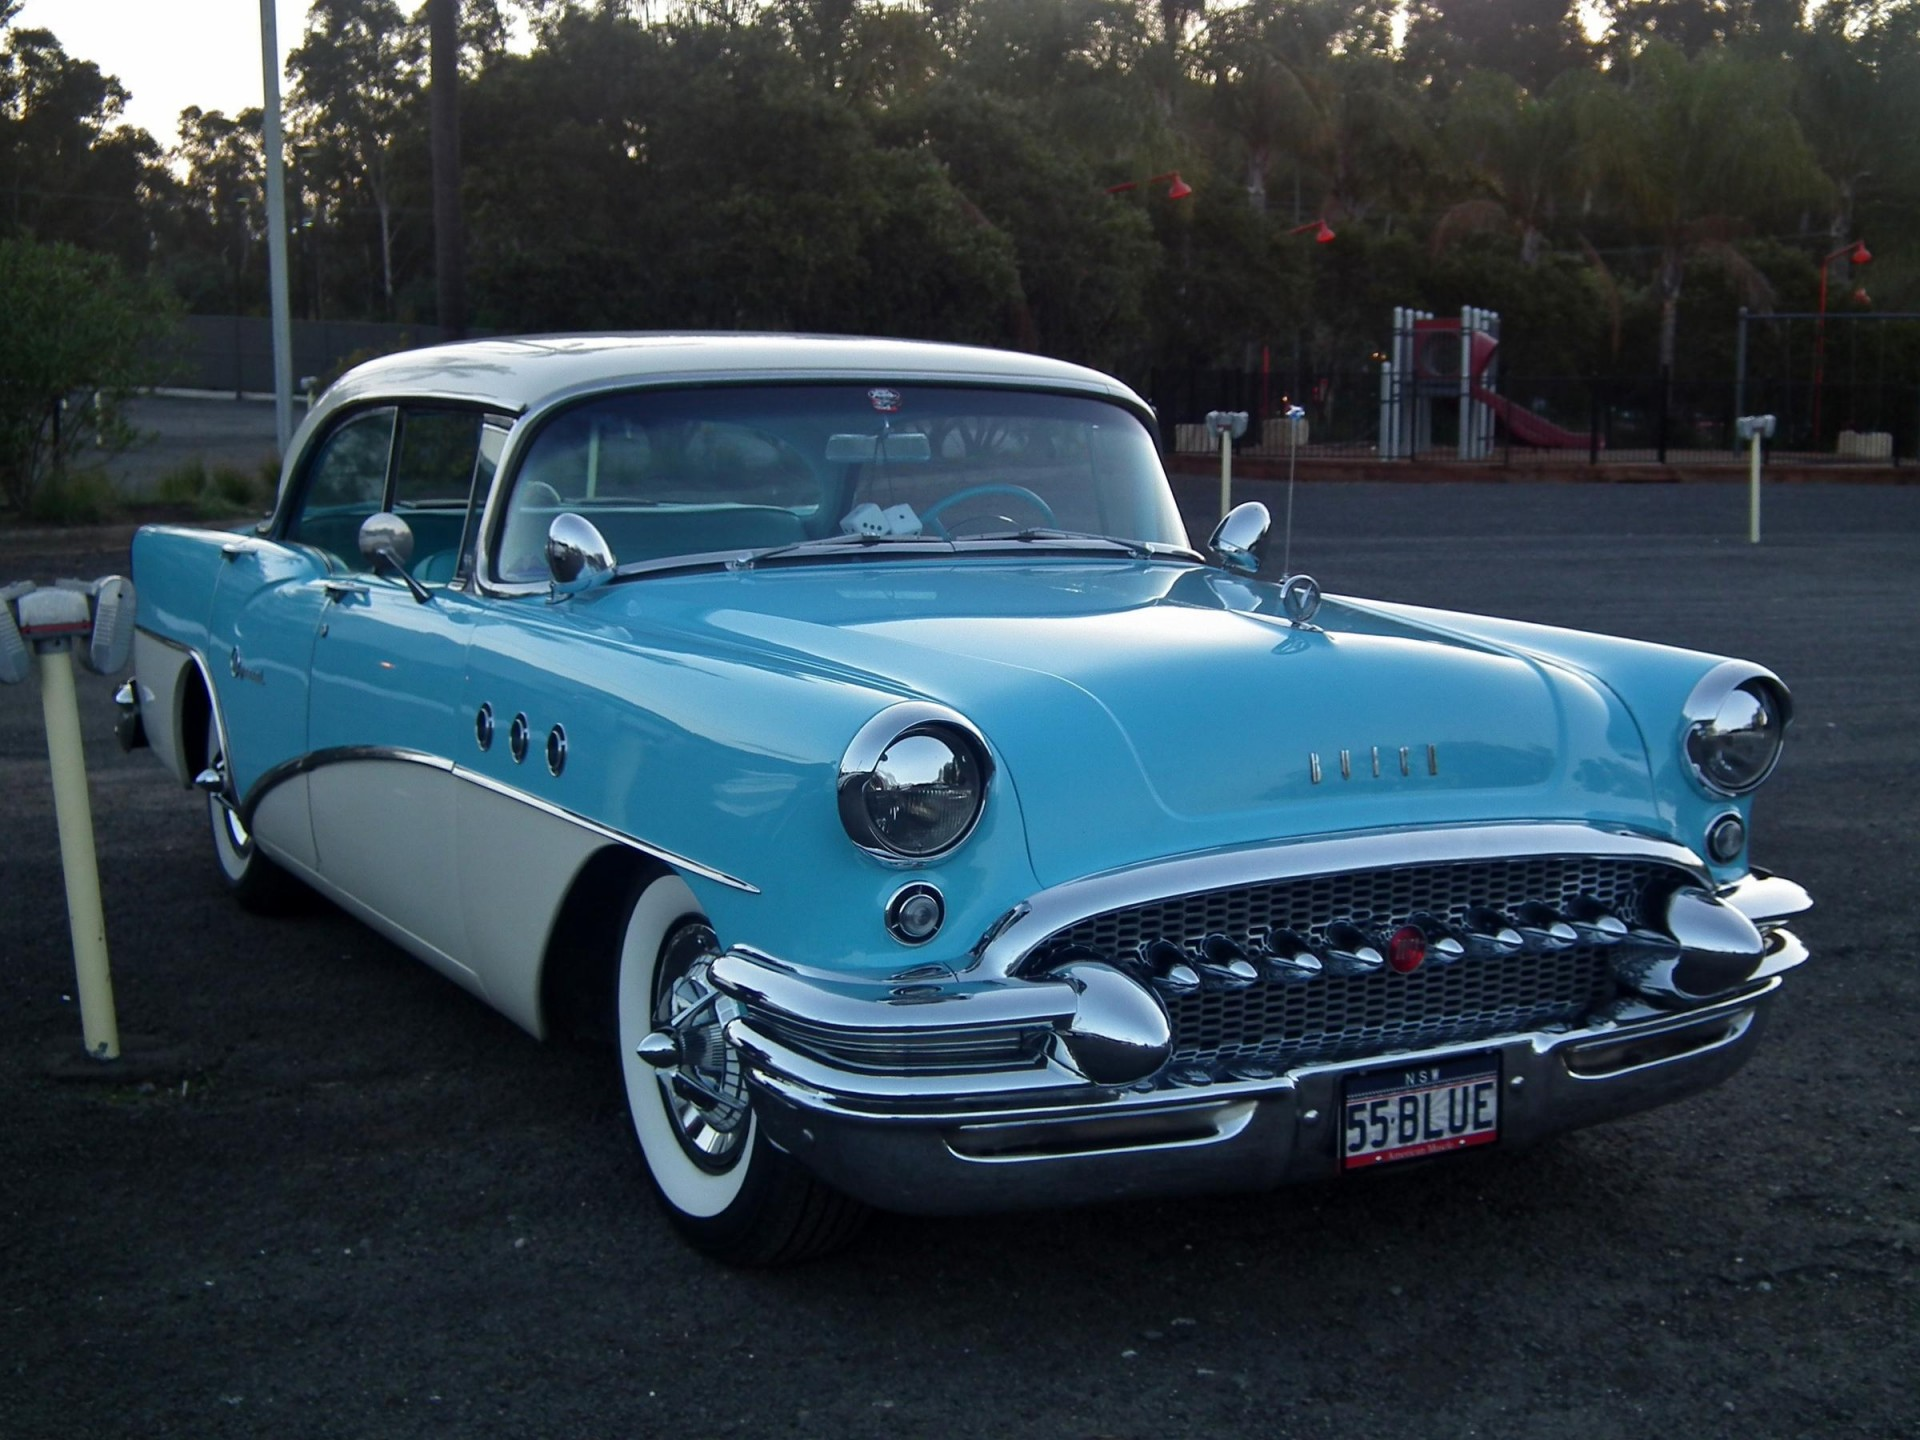 020 Essay Example 1955 Buick Special Hardtop Sedan 15420810537 About Phenomenal Car My Career Choice Your Caring And Sharing 1920